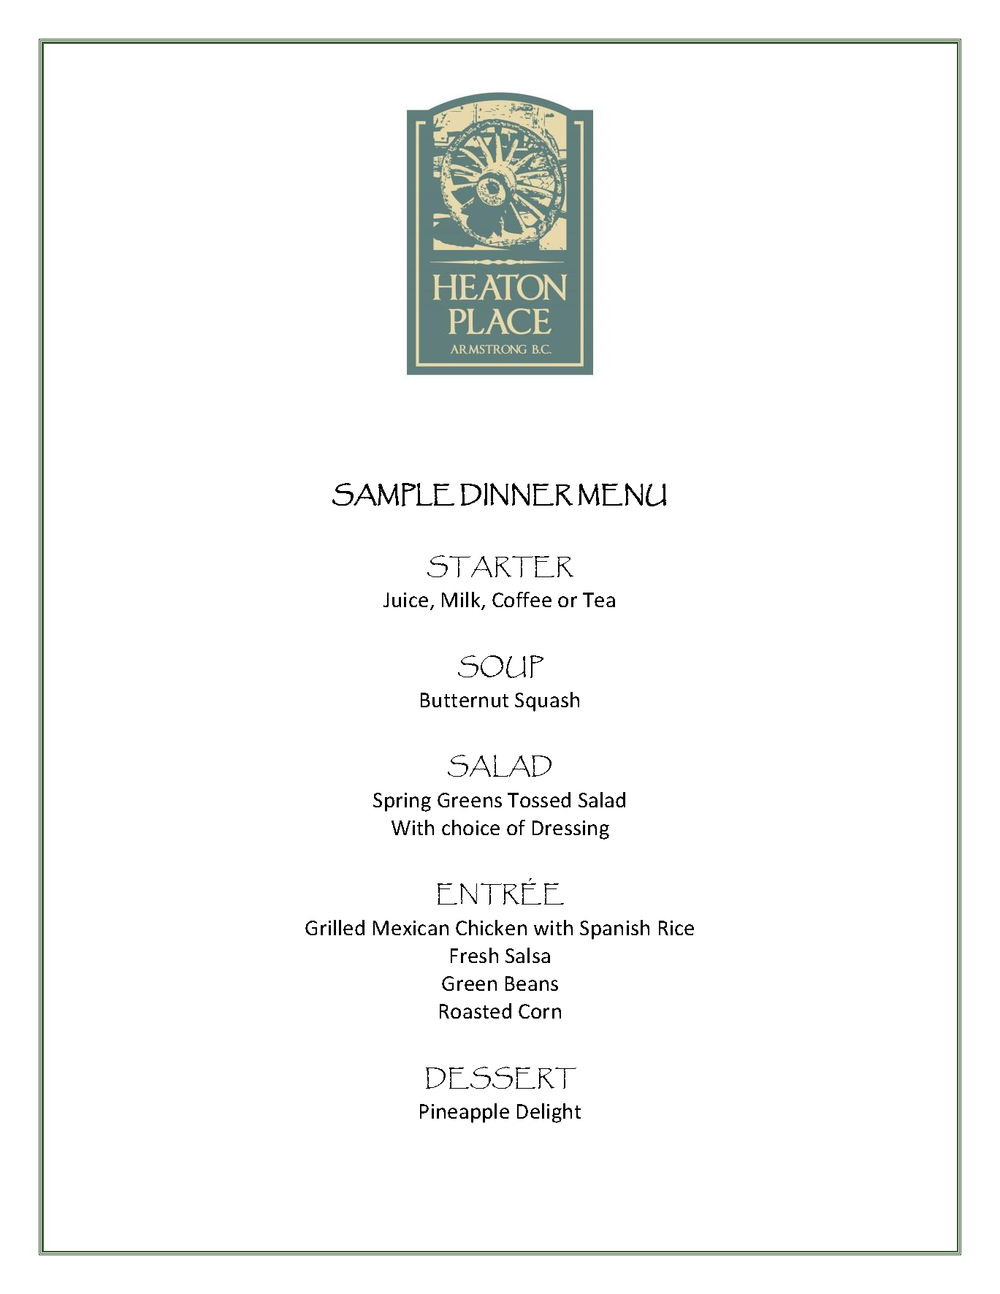 Dinner Menu Sample.png